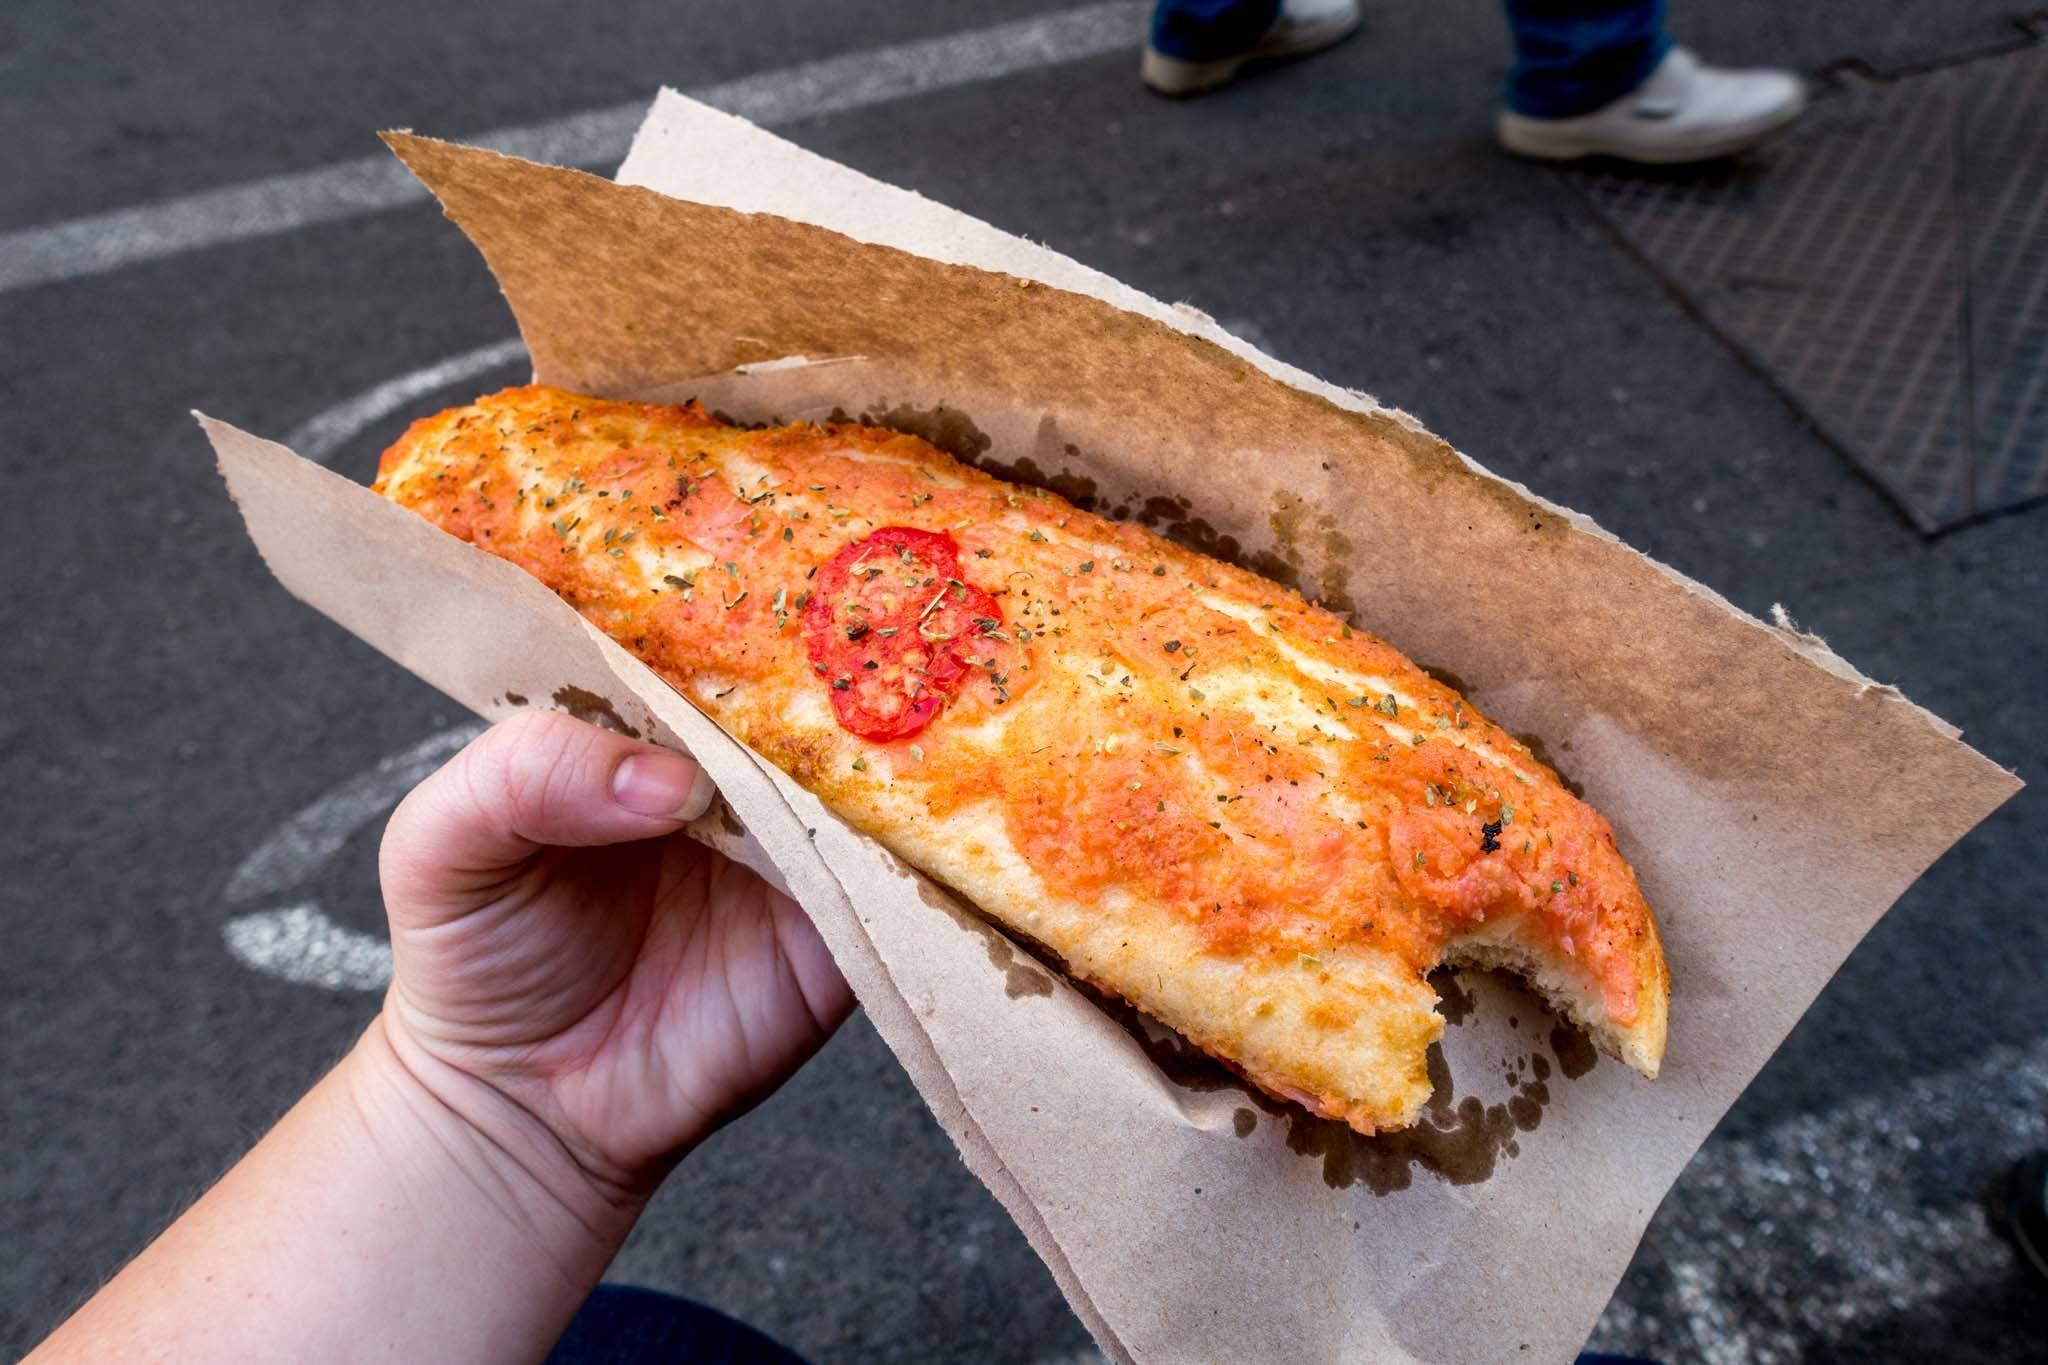 Bread covered in melted cheese and tomato sauce, a Palermo street food